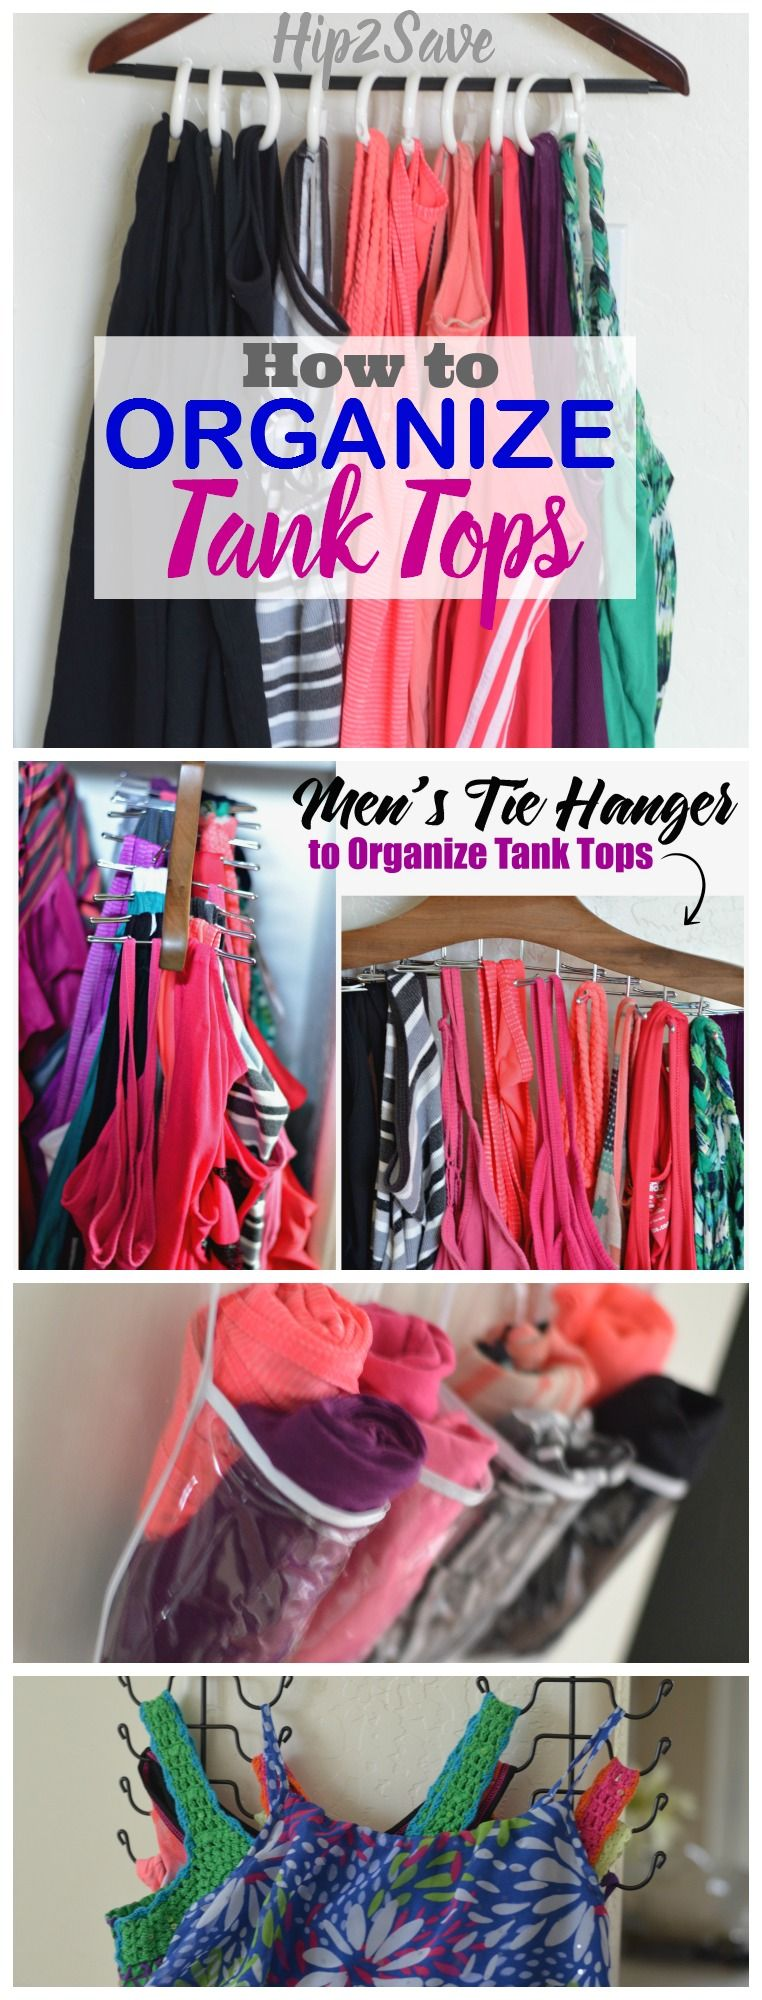 45++ Ideas to hang tank tops ideas in 2021